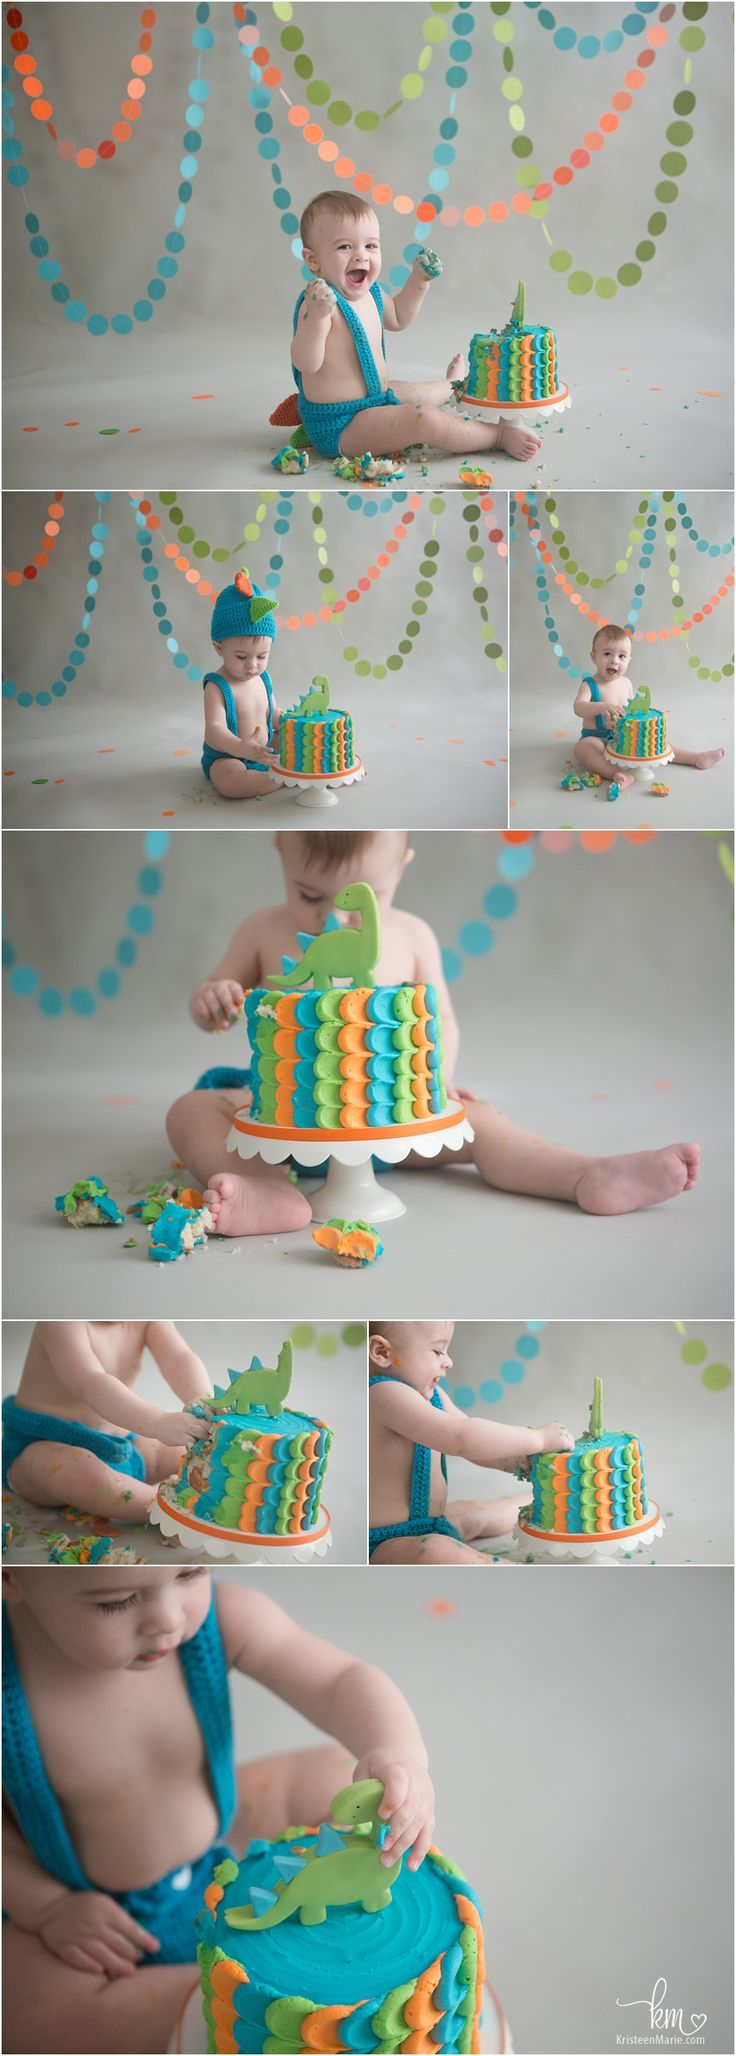 Dino 1st birthday cake smash session - Dinosaur themed 1st birthday